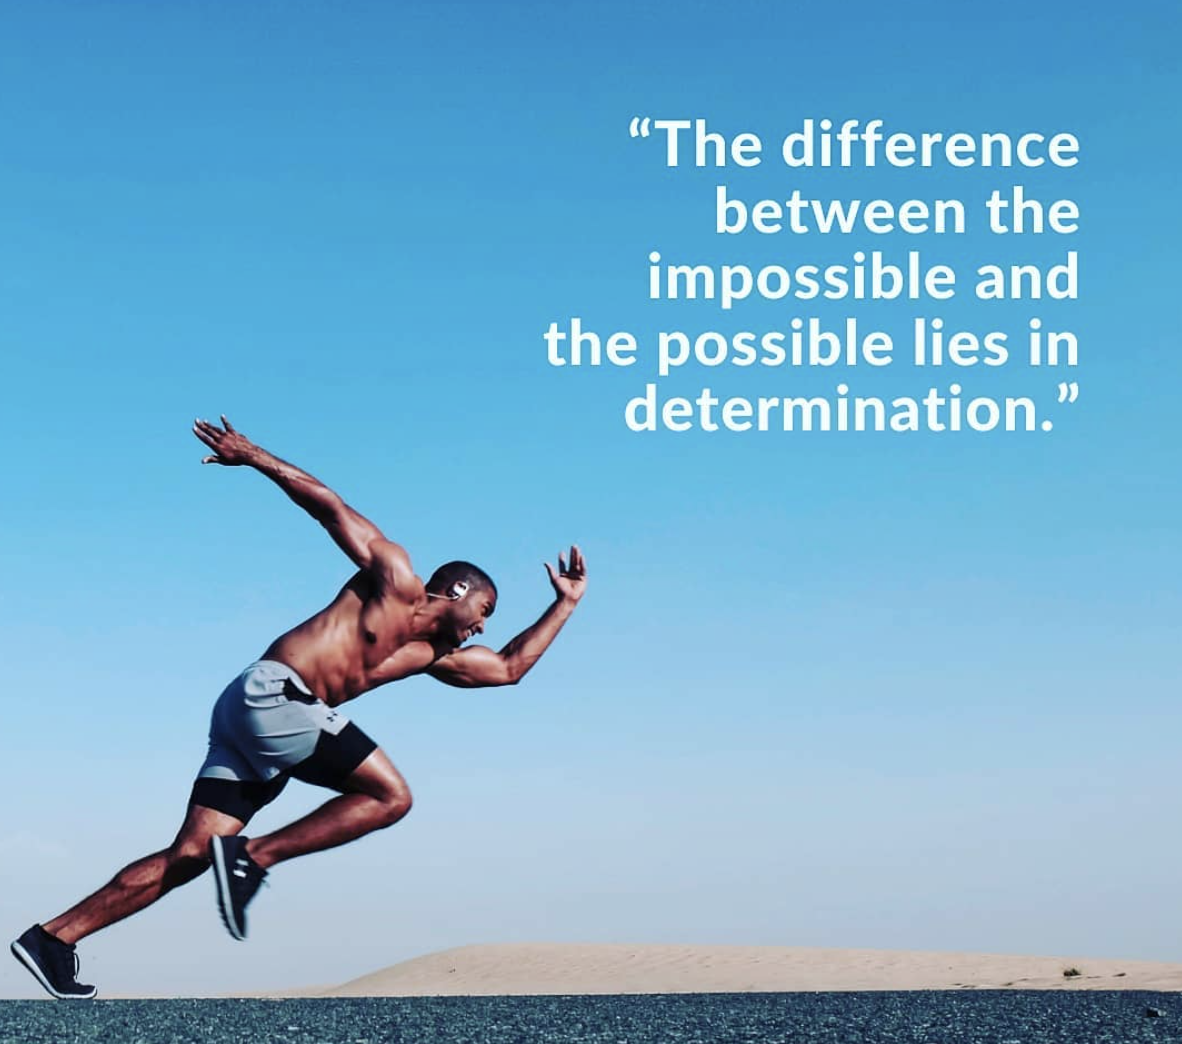 [Image] The difference between the impossible and the possible lies in determination.